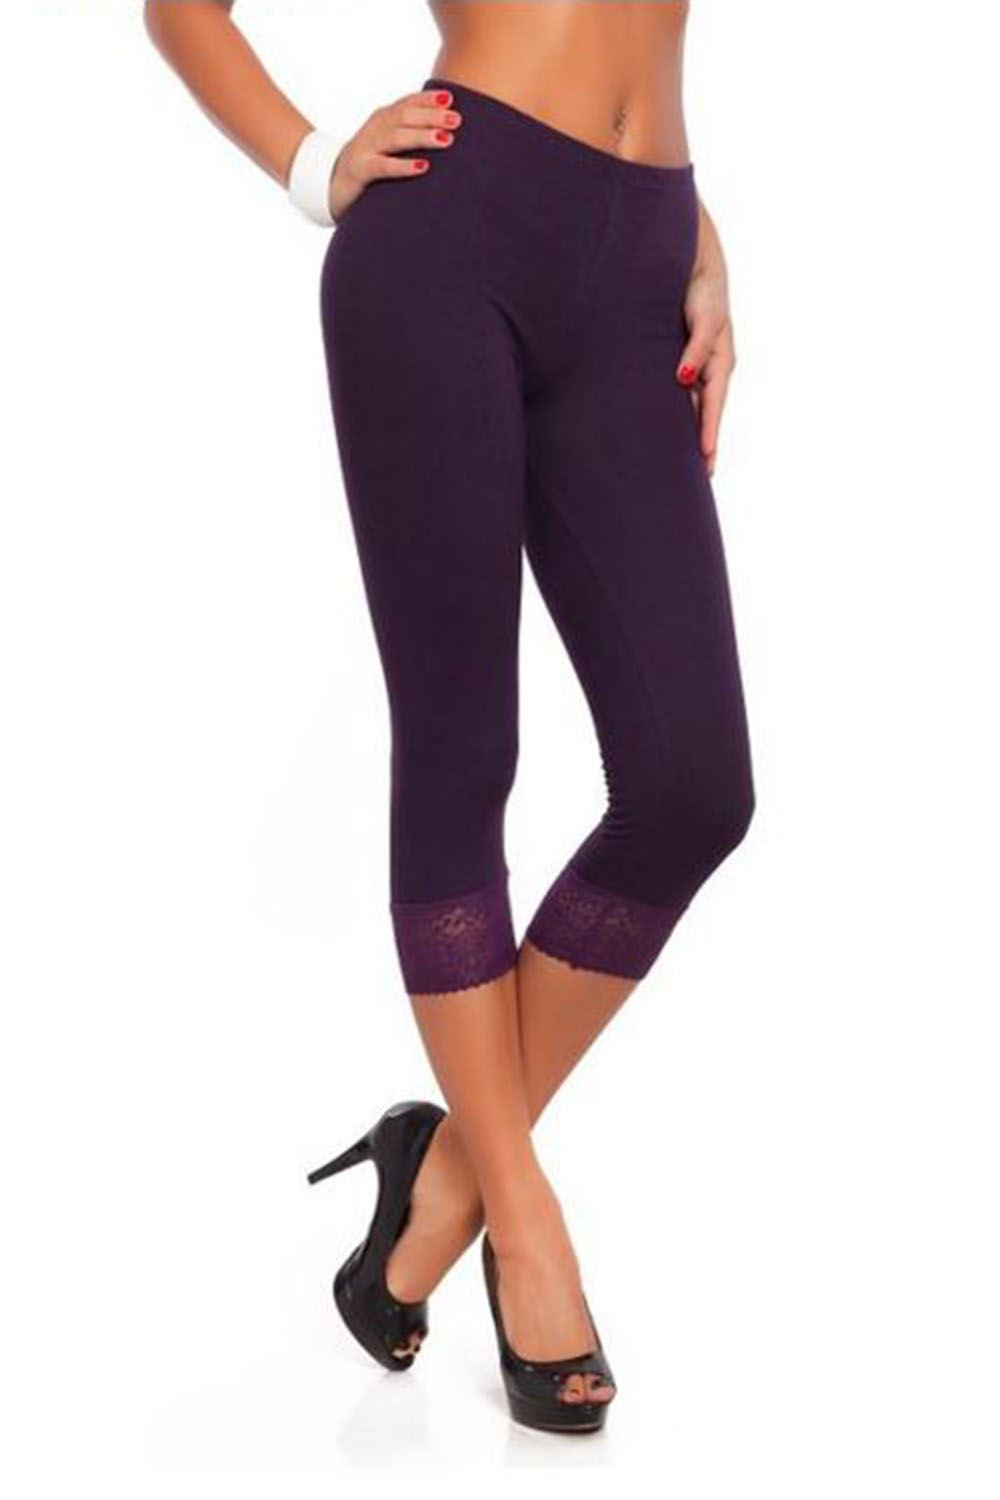 1 X Proskins Intelligent Slim Range Plus High Waisted 3/4 Length Leggings About the Brand Since the experts at Proskins have been driven to create innovative and high quality fitness garments.